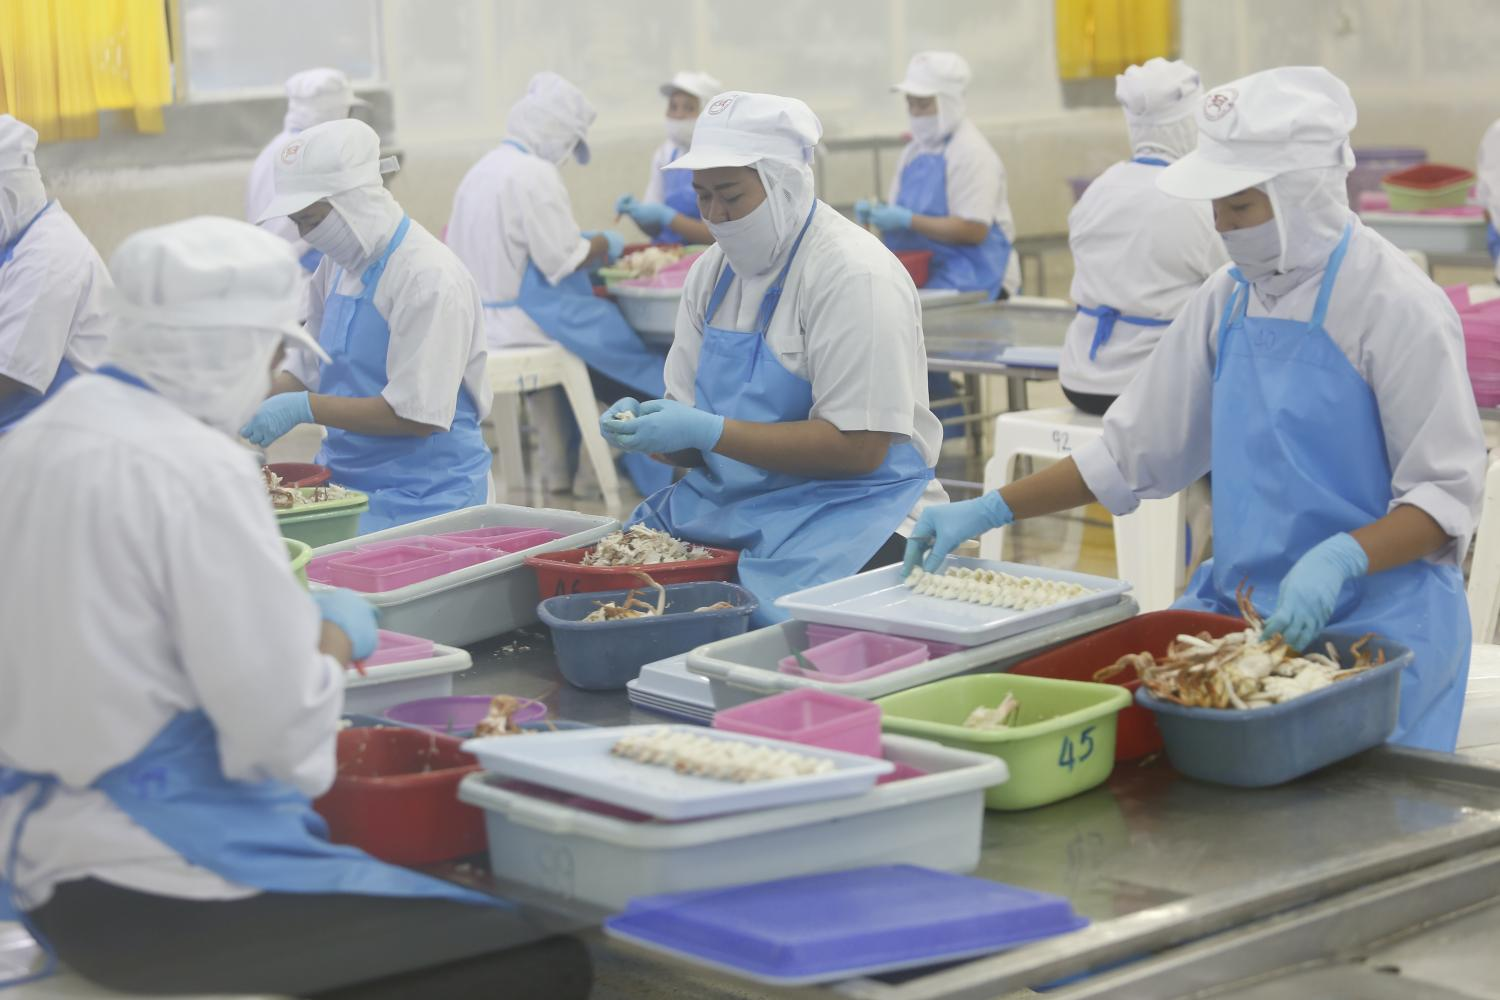 Processed food is one of the sectors that the FTI and the central bank are promoting for overseas expansion.(Photo by Pattarapong Chatpattarasill)